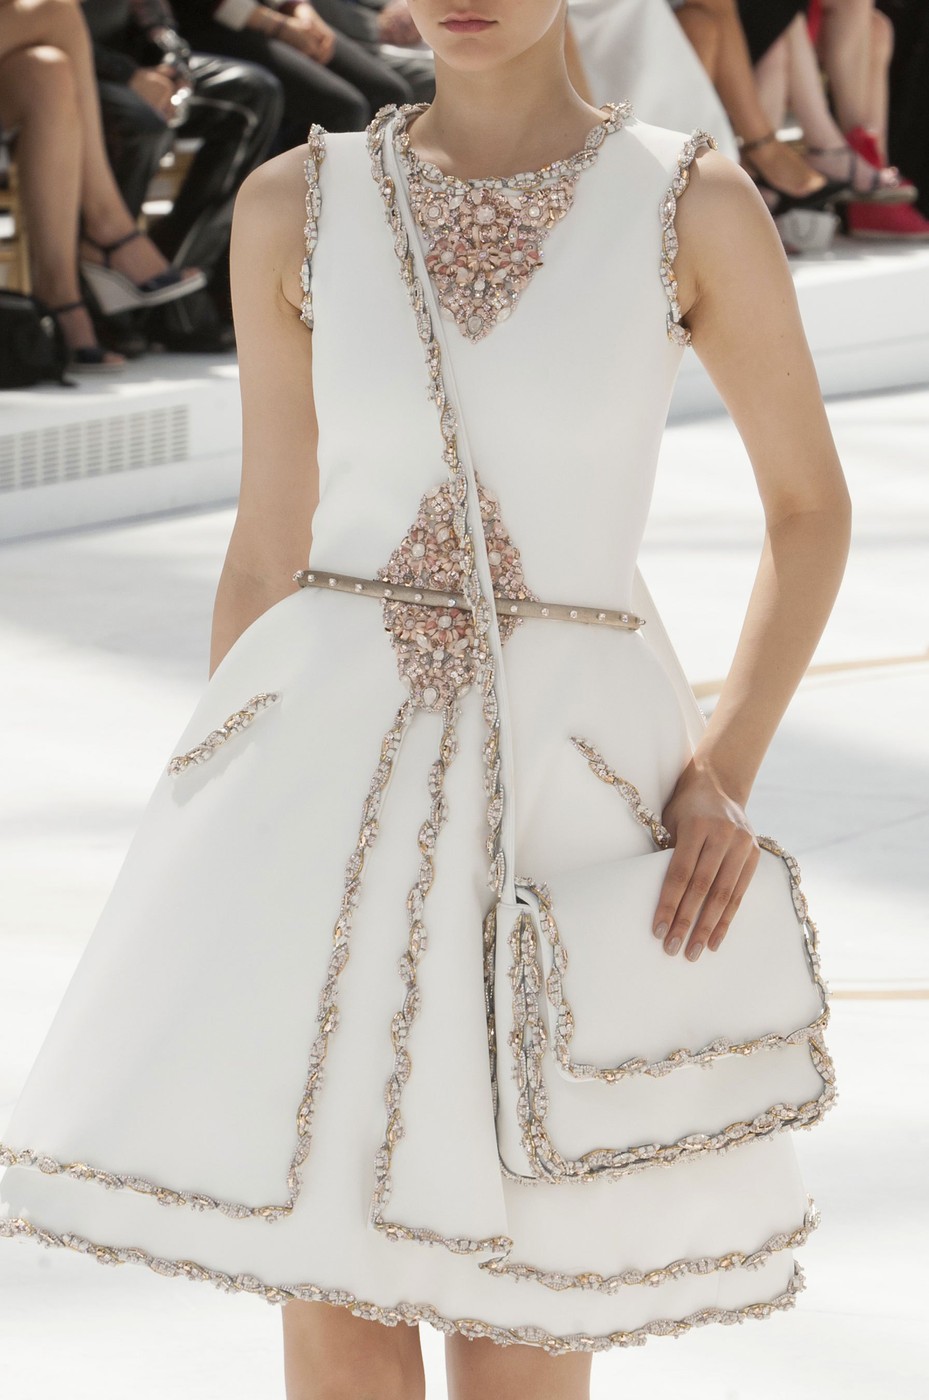 chanel fall 2014 runway pictures livingly